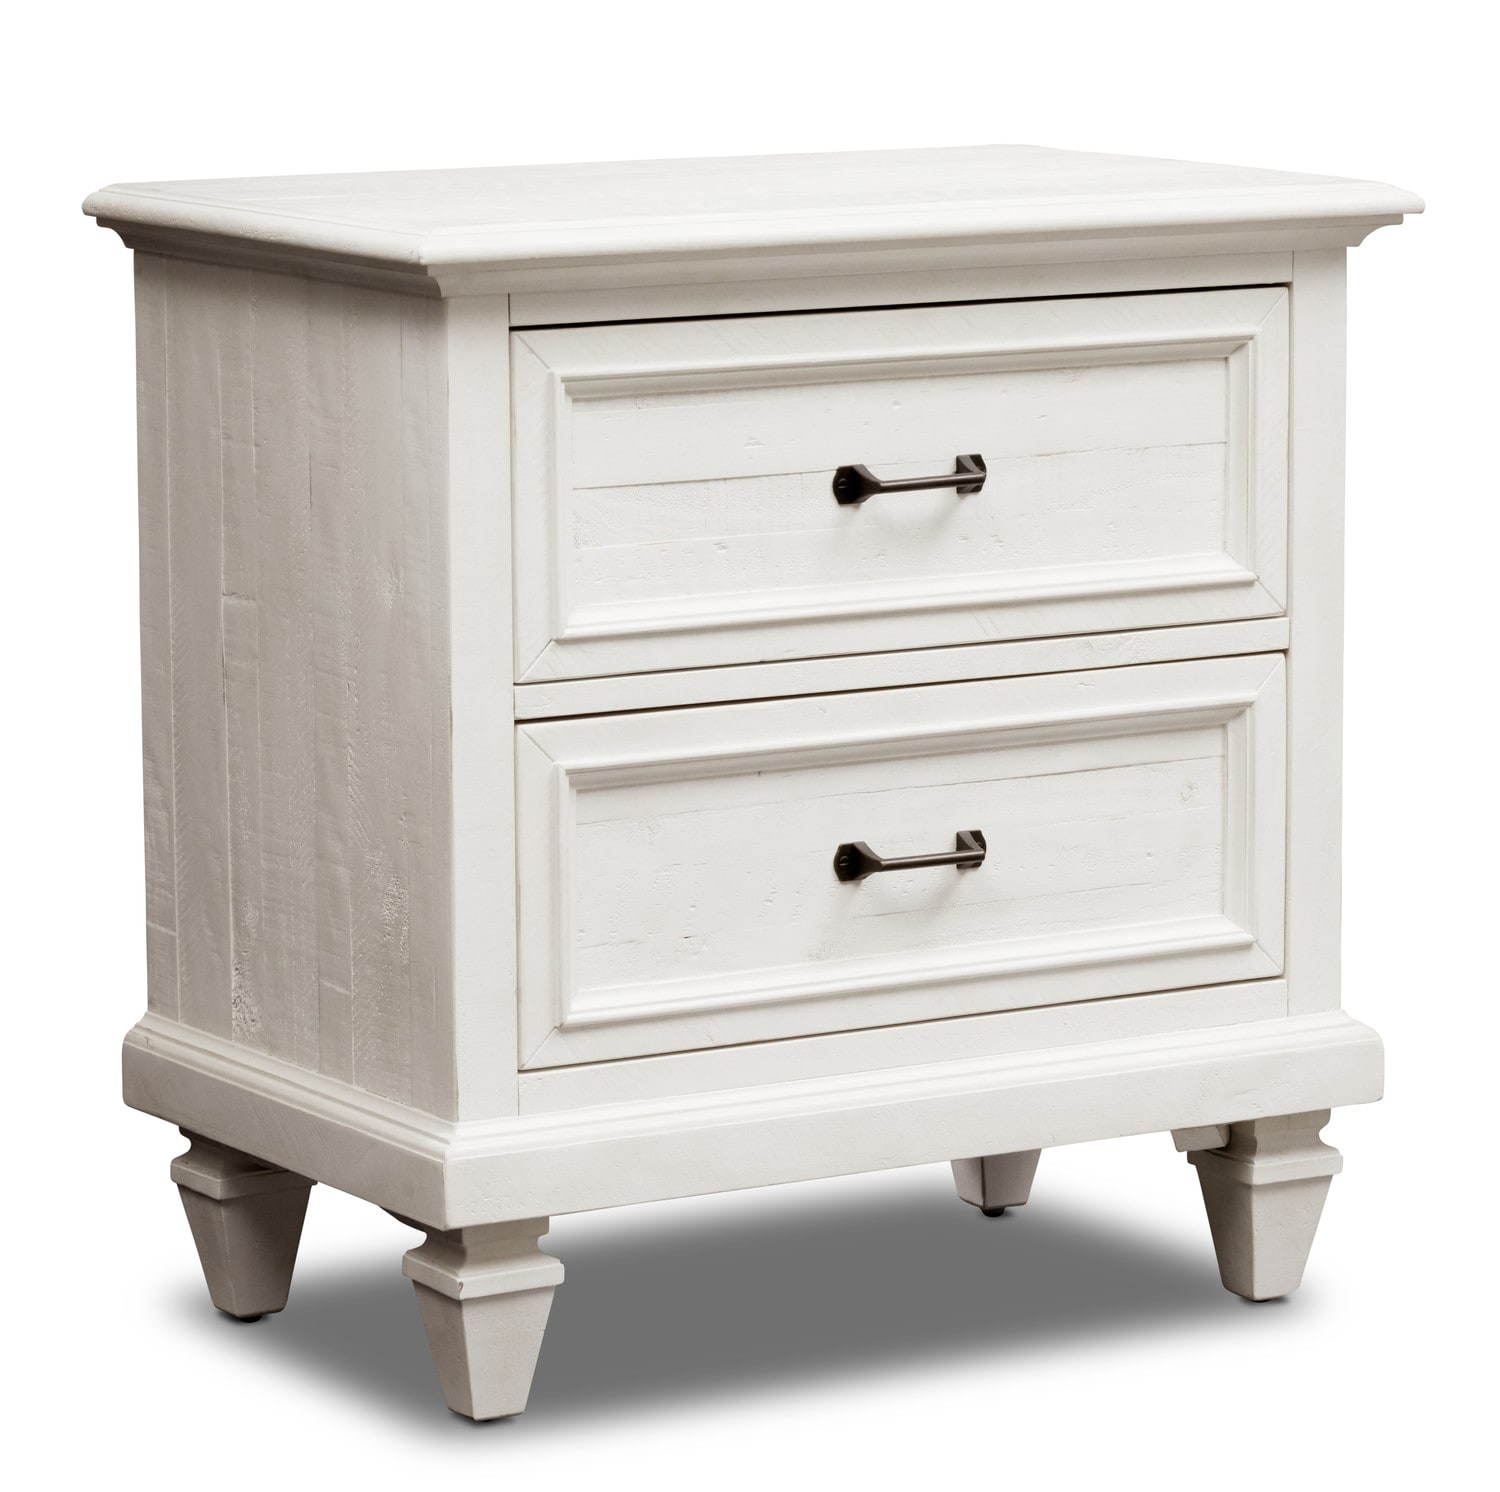 Bedroom Furniture - Harrison Nightstand